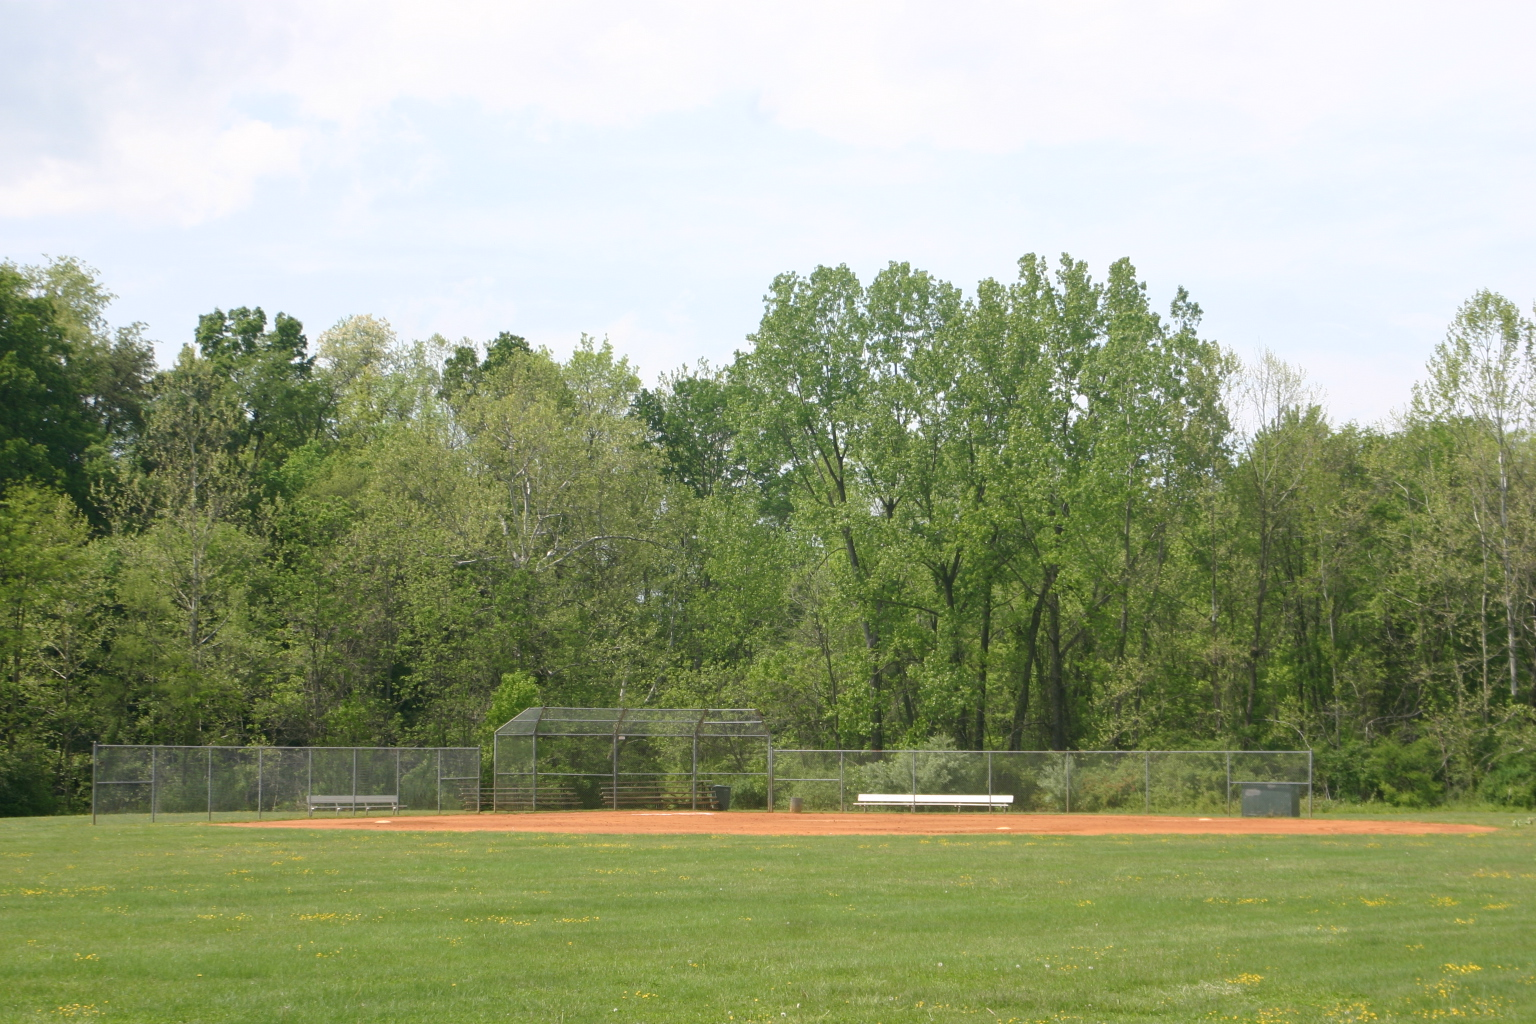 Basic Park ball field